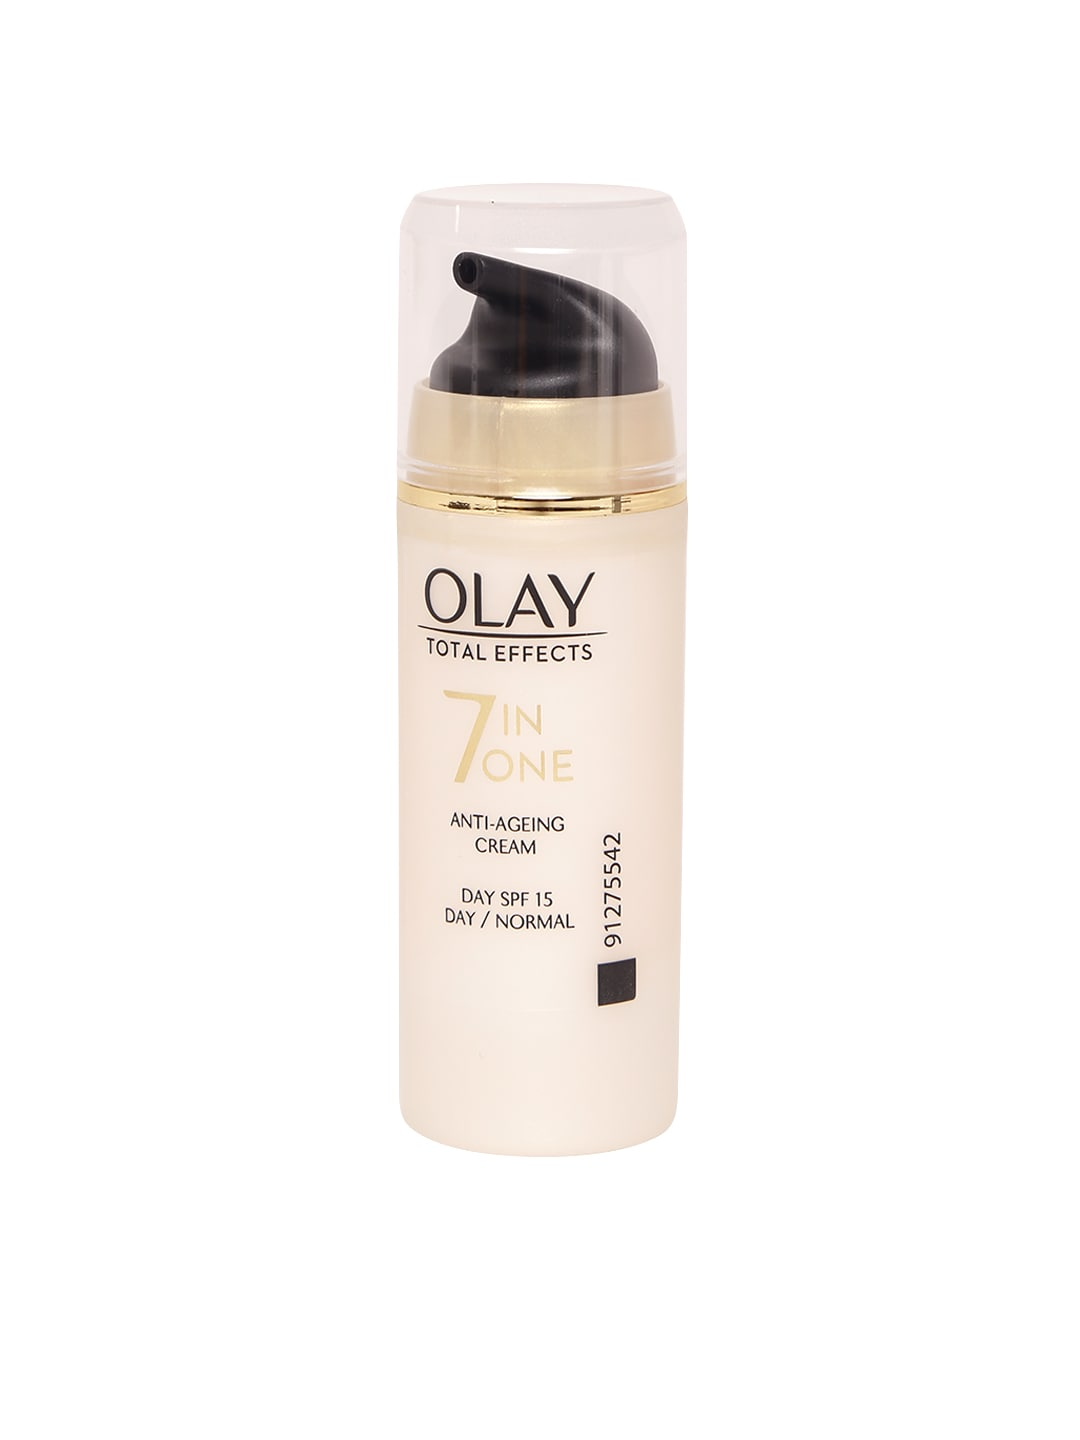 Olay Total Effect 7 In 1 SPF 15 Anti Ageing Skin Cream 20 g image